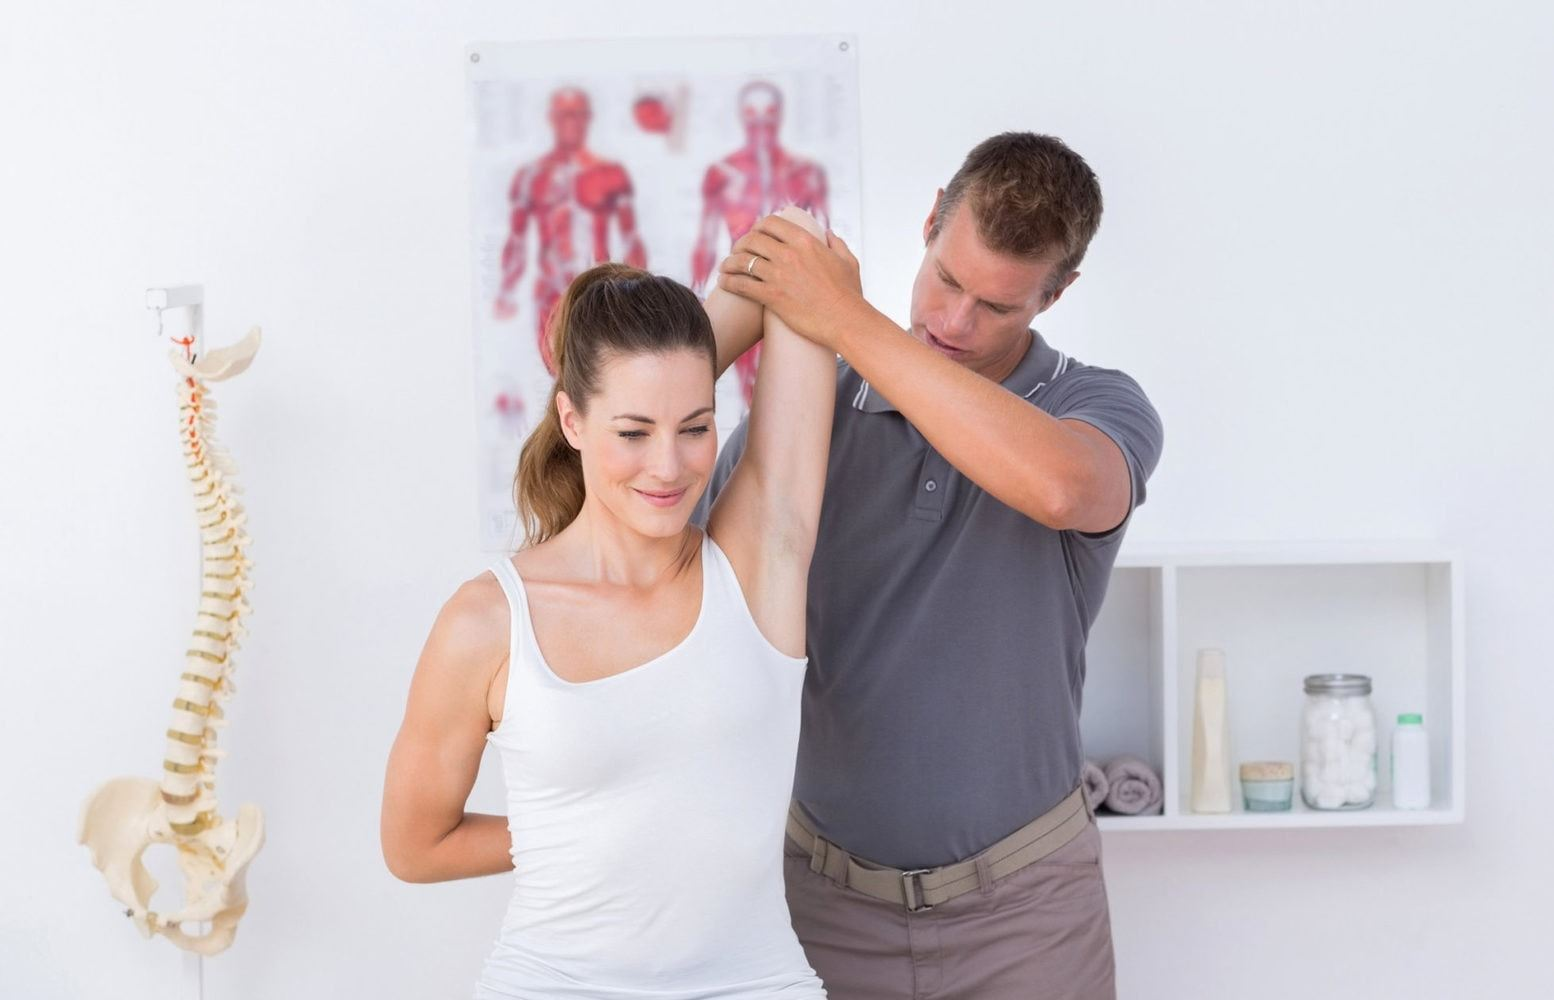 How To Find A Chiropractor Near Me